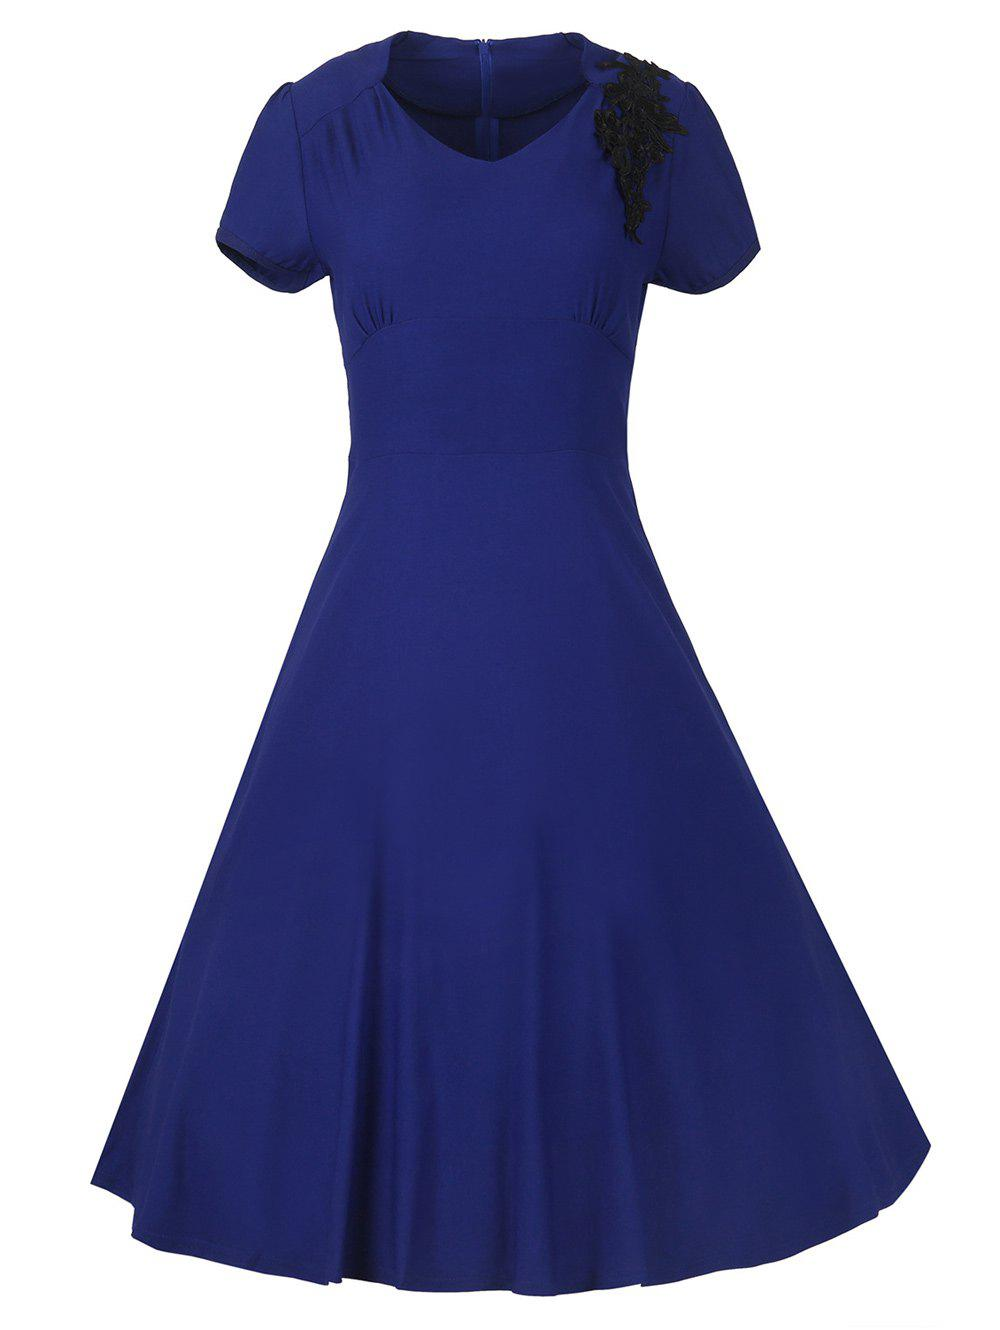 Vintage Swing High-Waist Embroidery Zippered Dress - SAPPHIRE BLUE M